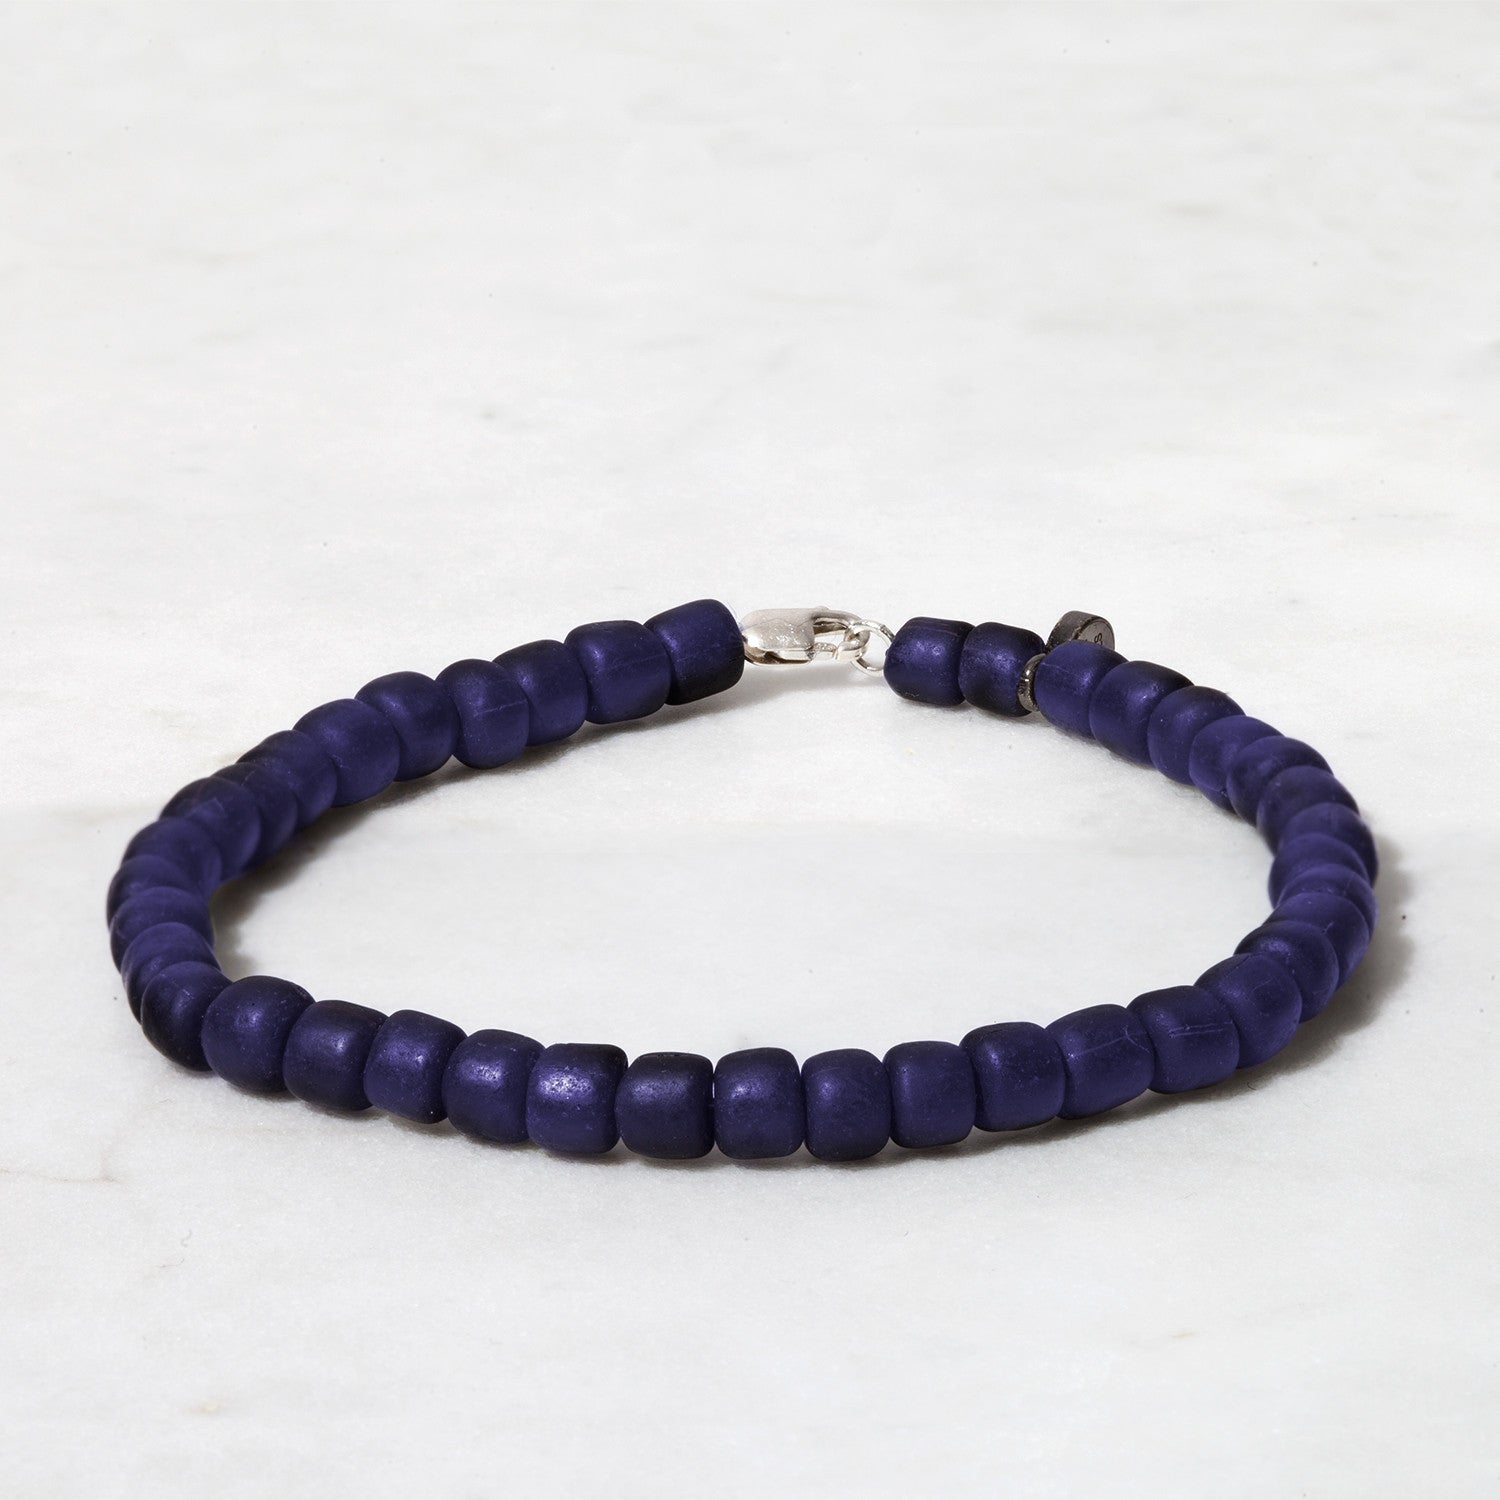 s bgcolor men wanchor forzieri bracelet blue reebonz in mens pad india leather mode w navy jewellery fff anchor